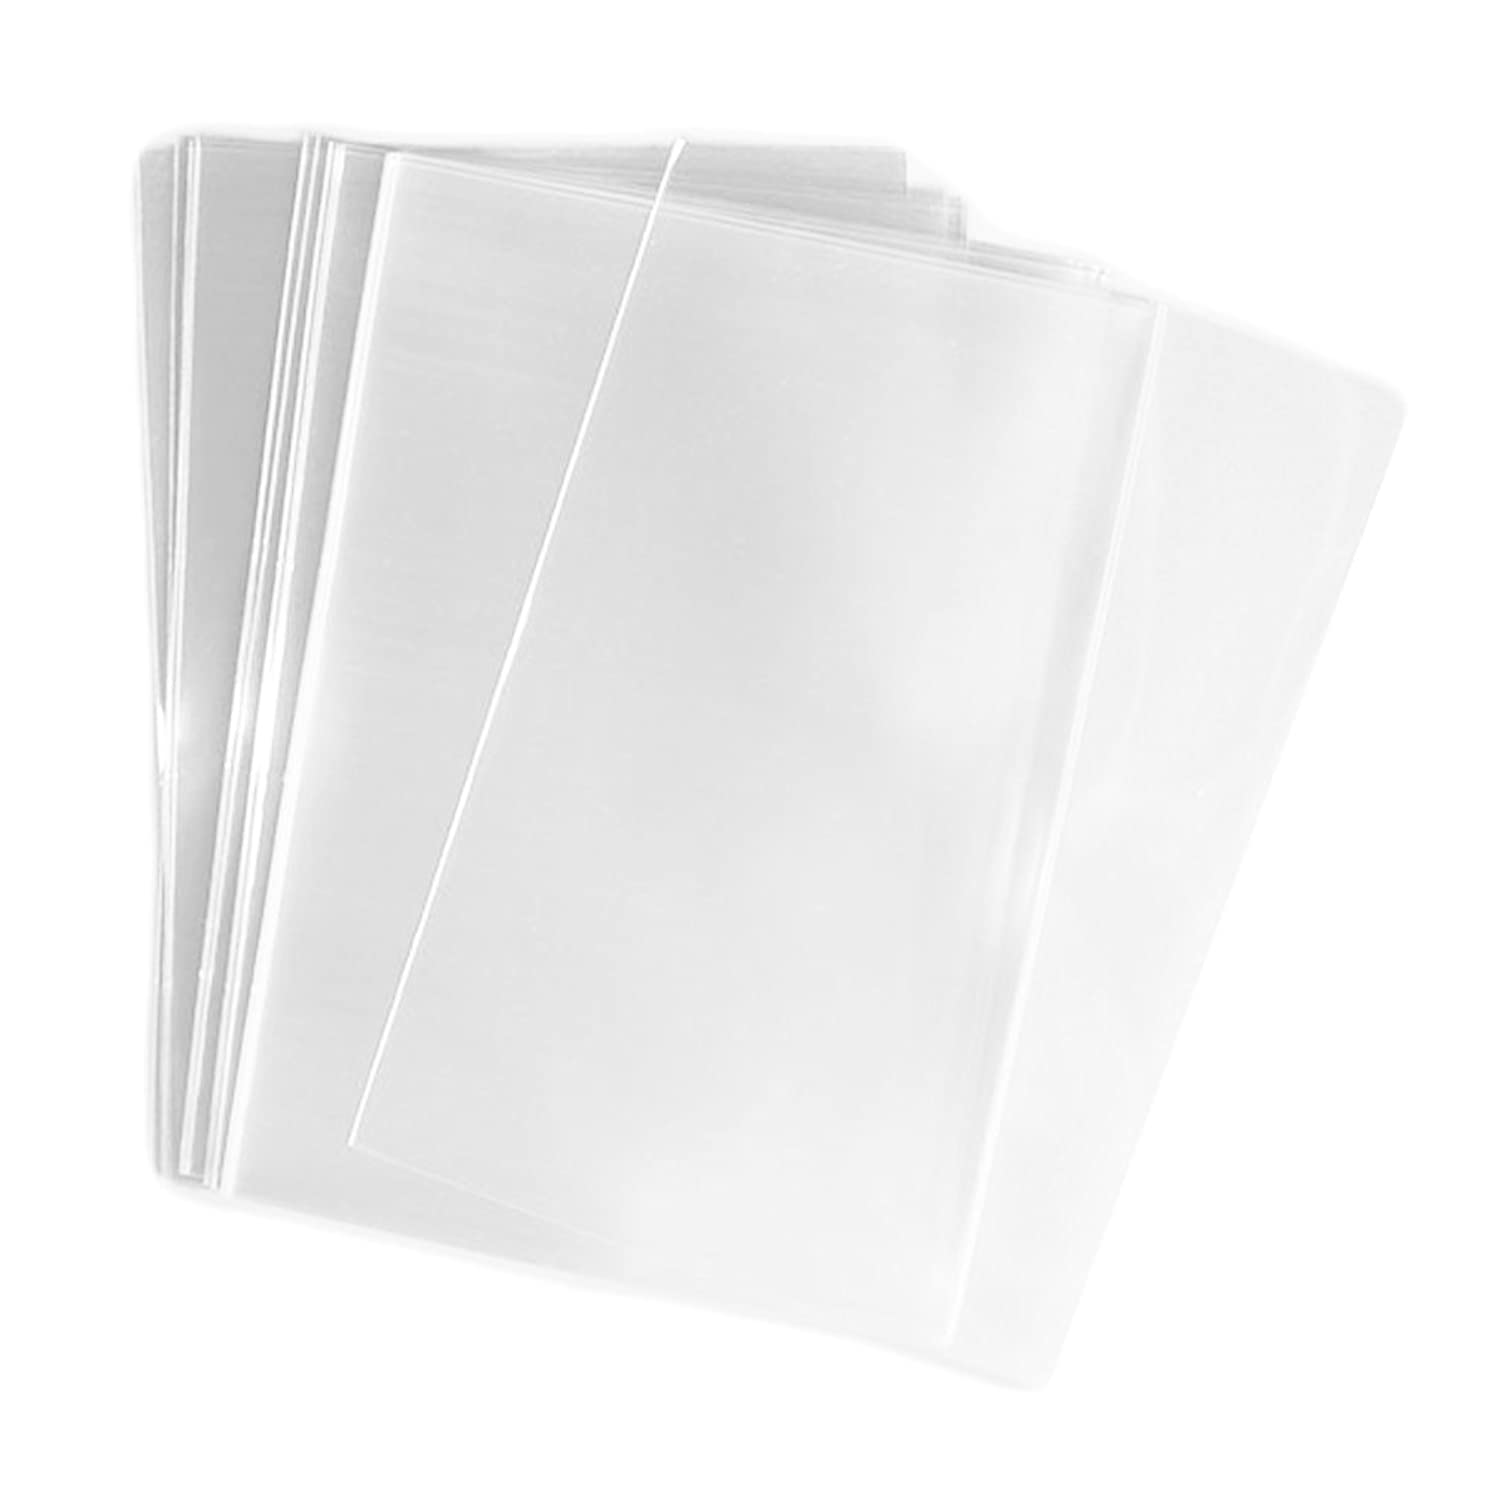 UNIQUEPACKING 500 Piece 4 x 6 (O) Clear-Flat-Cello/Cellophane Bags Good for Bakery, Party/Wedding Favors